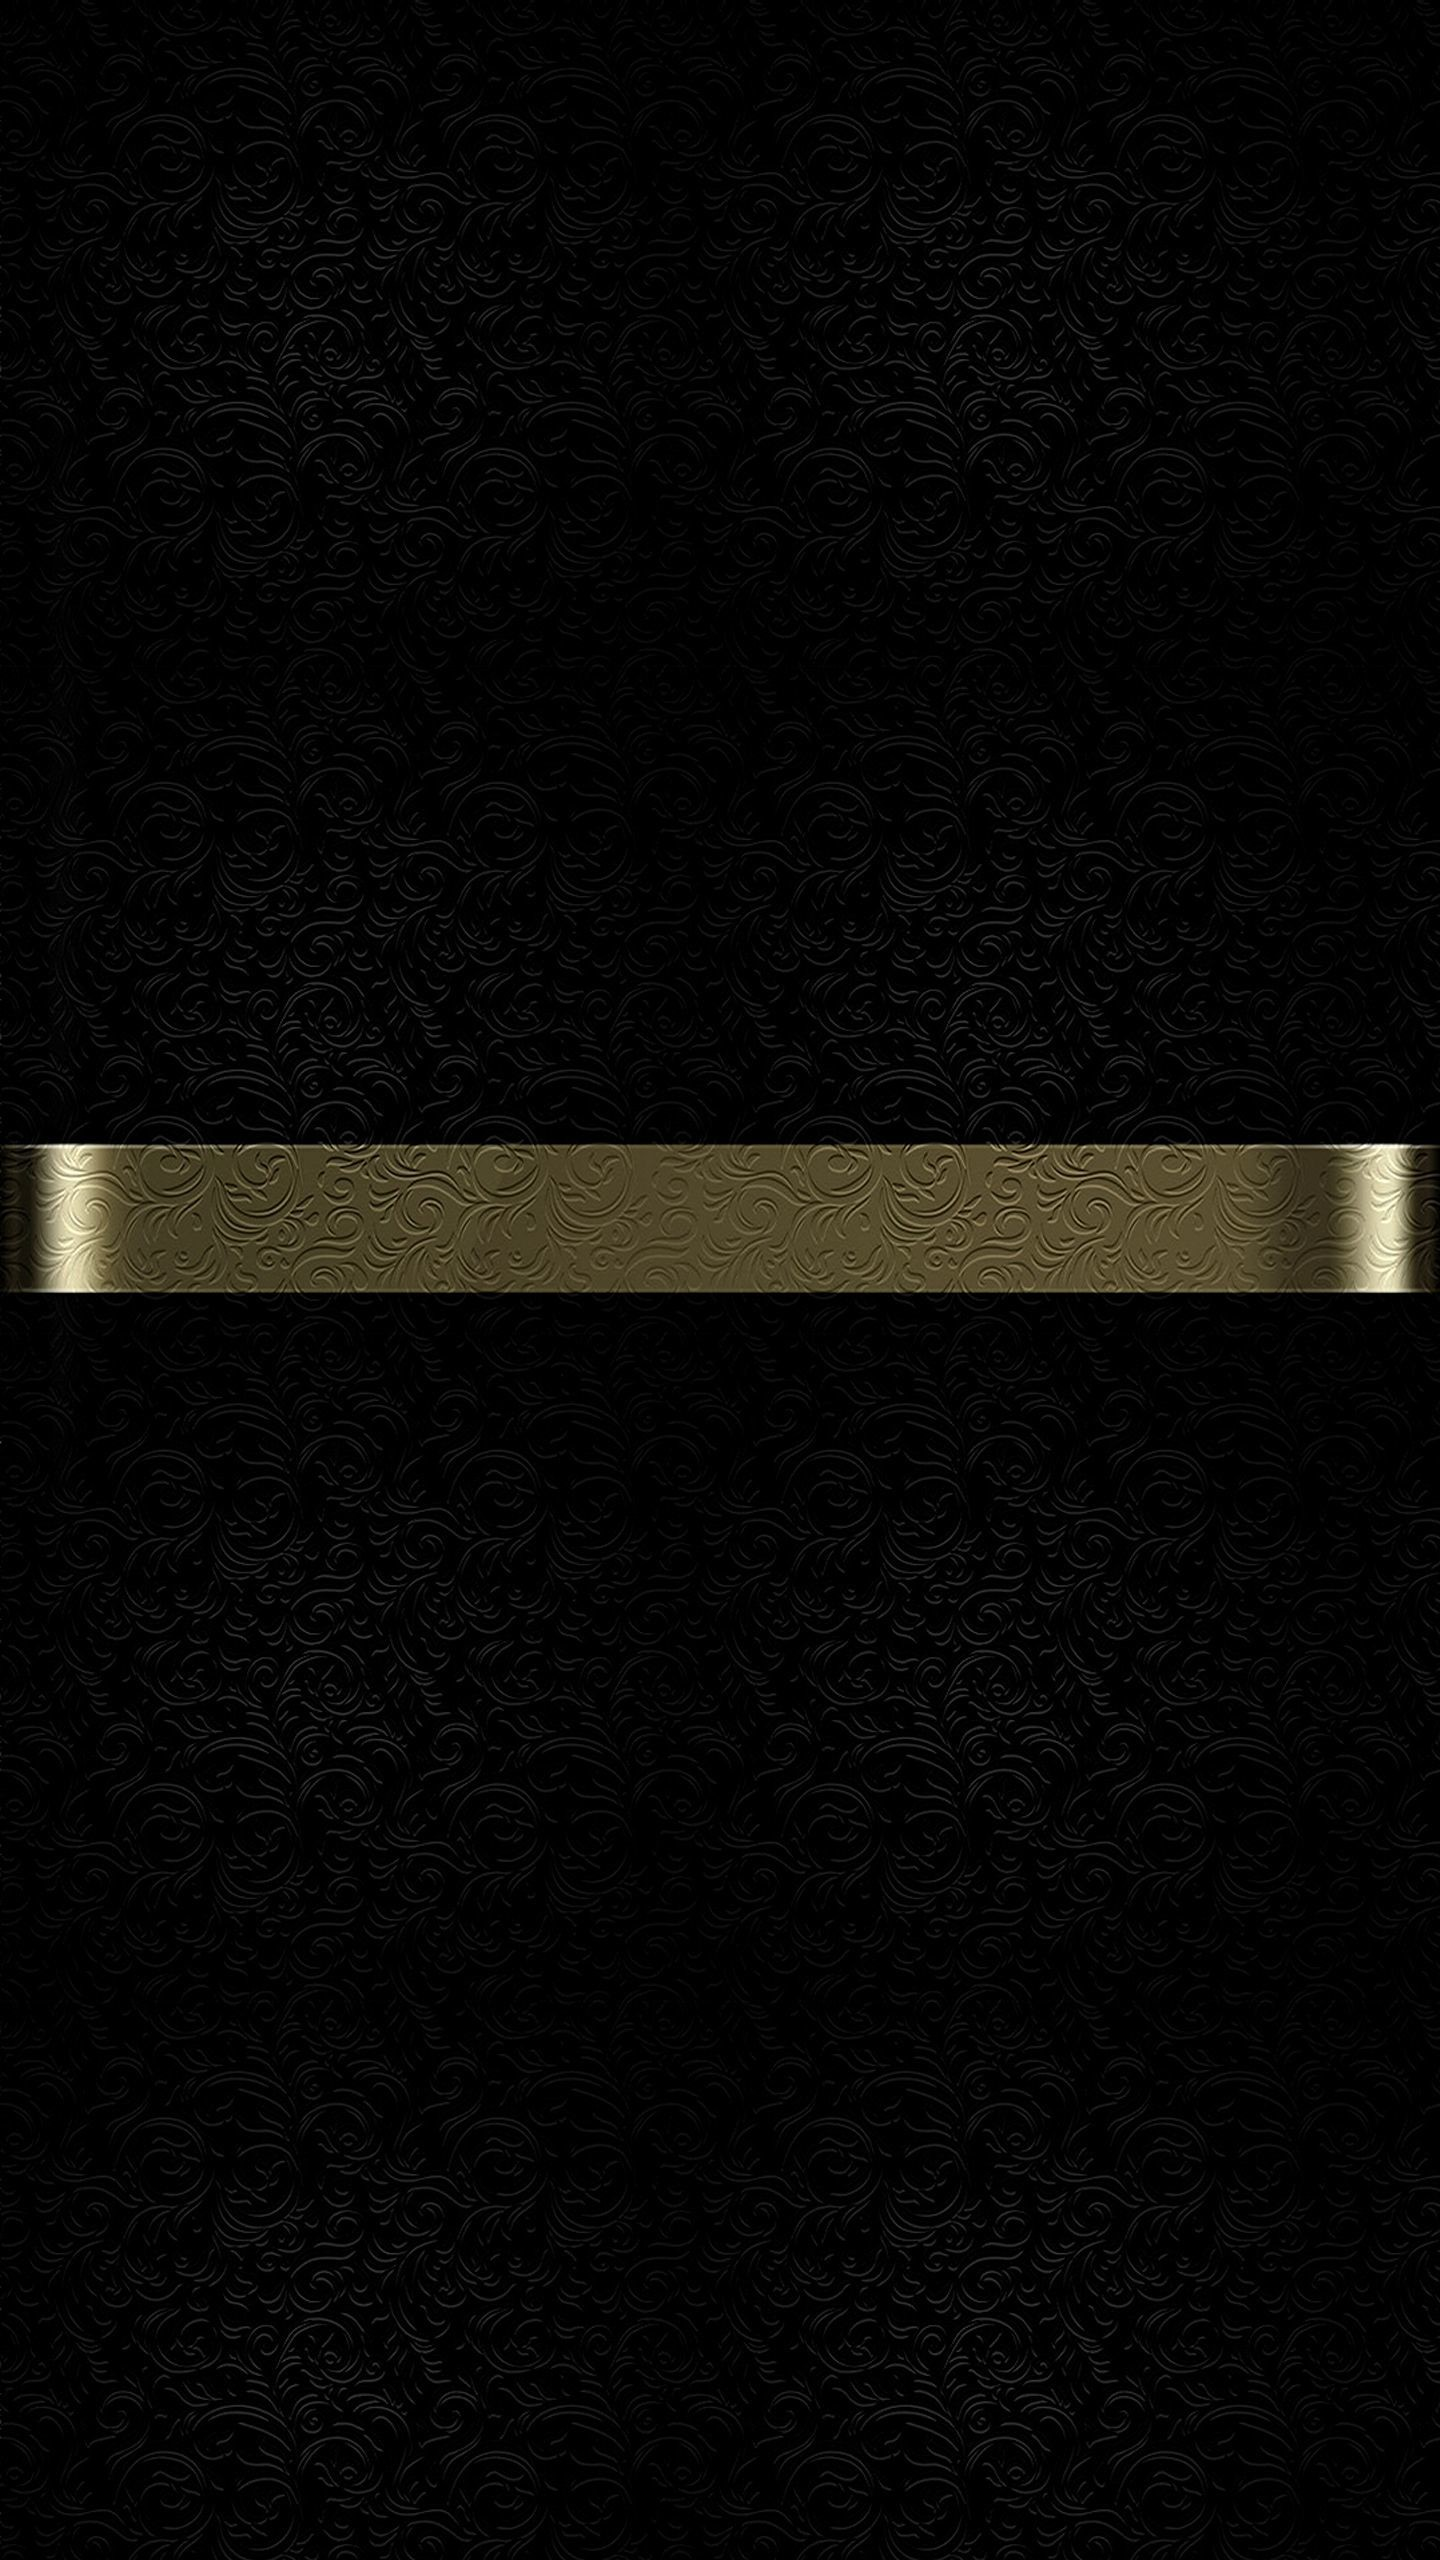 Res: 1440x2560, Free Download of Dark S7 Edge Wallpaper 09 with Black Background and Gold  Line with Floral. Floral TextureMetal TextureApple ...